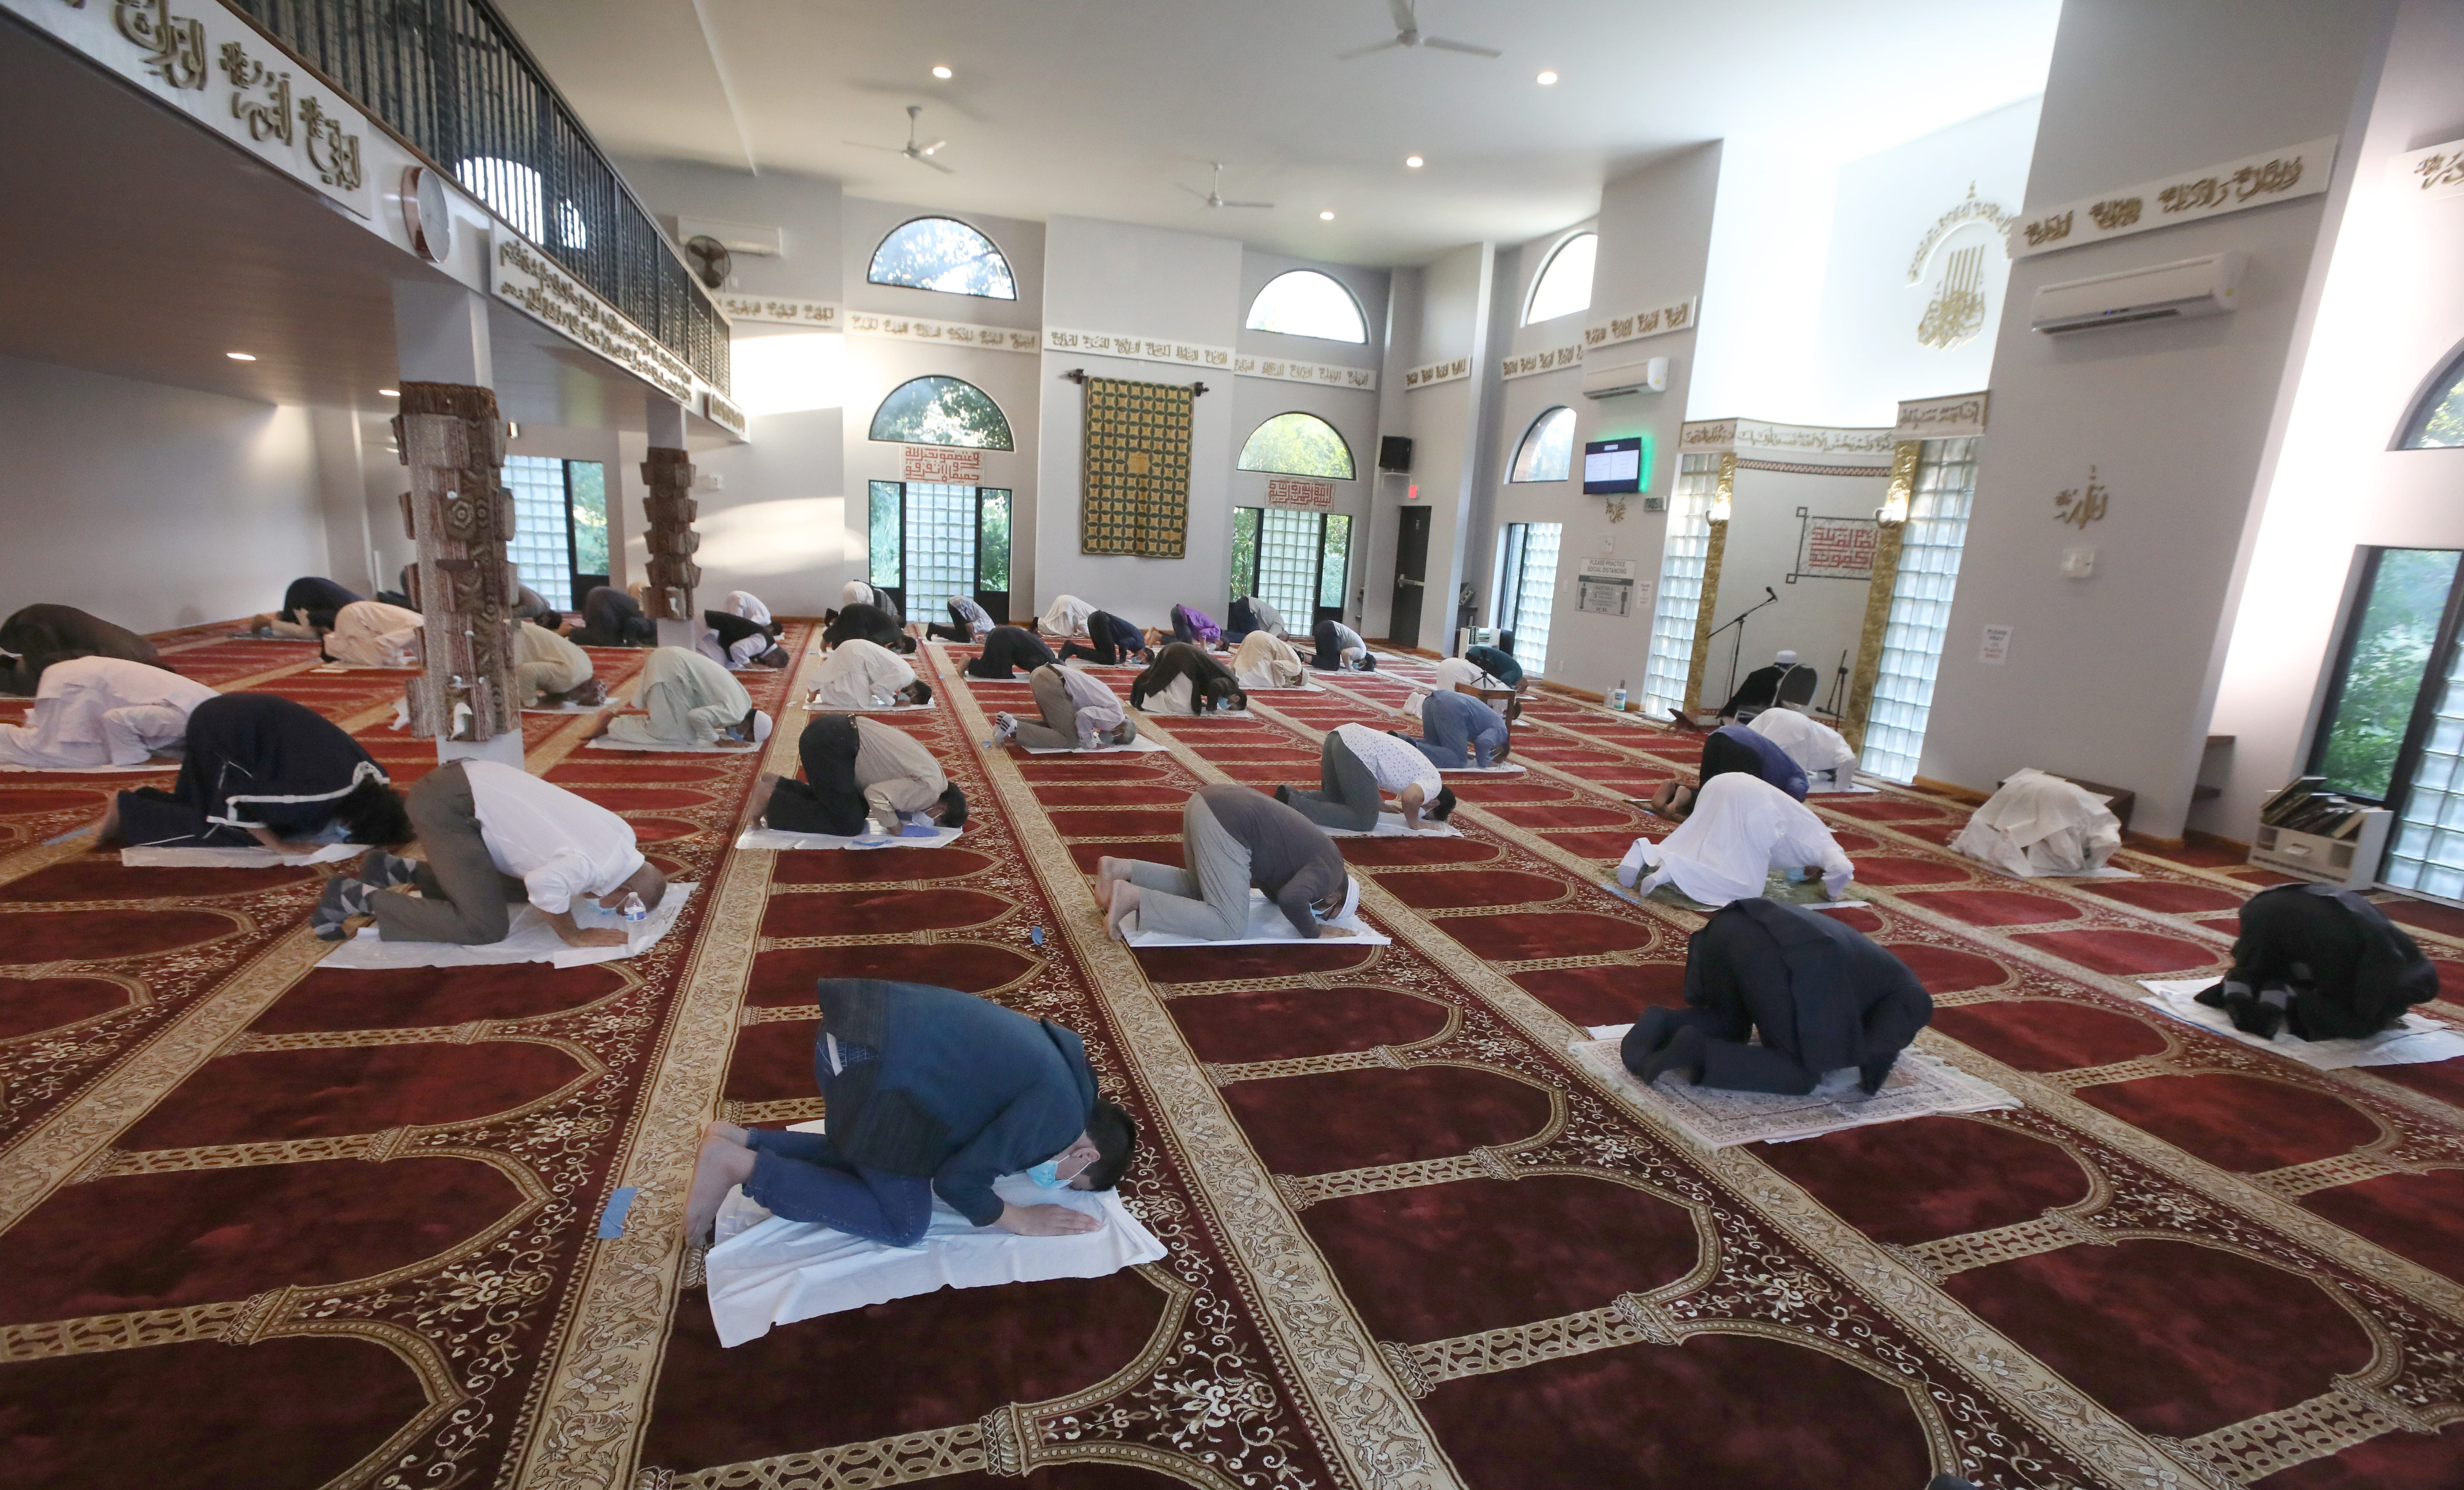 Inside the Islamic Center of Rochester, Rochester-area Muslims pray as they celebrate Eid al-Adha July 31, 2020. Due to coronavirus, the Center took extra precautions, setting up plastic sheets spaced six feet apart all throughout inside the prayer hall.